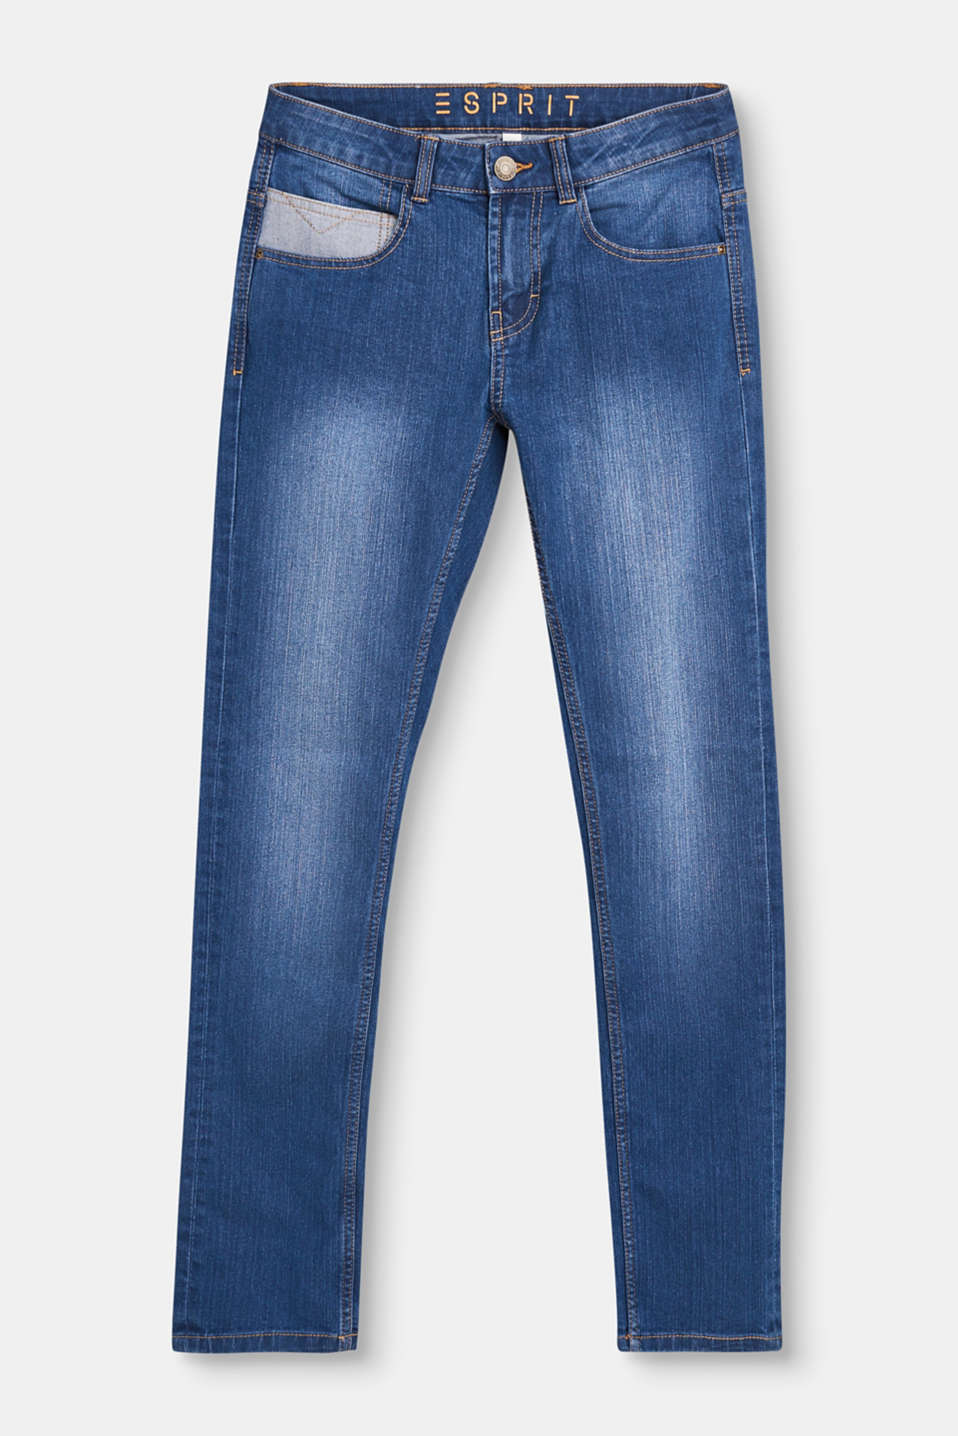 Esprit - Stretch jeans with adjustable waistband